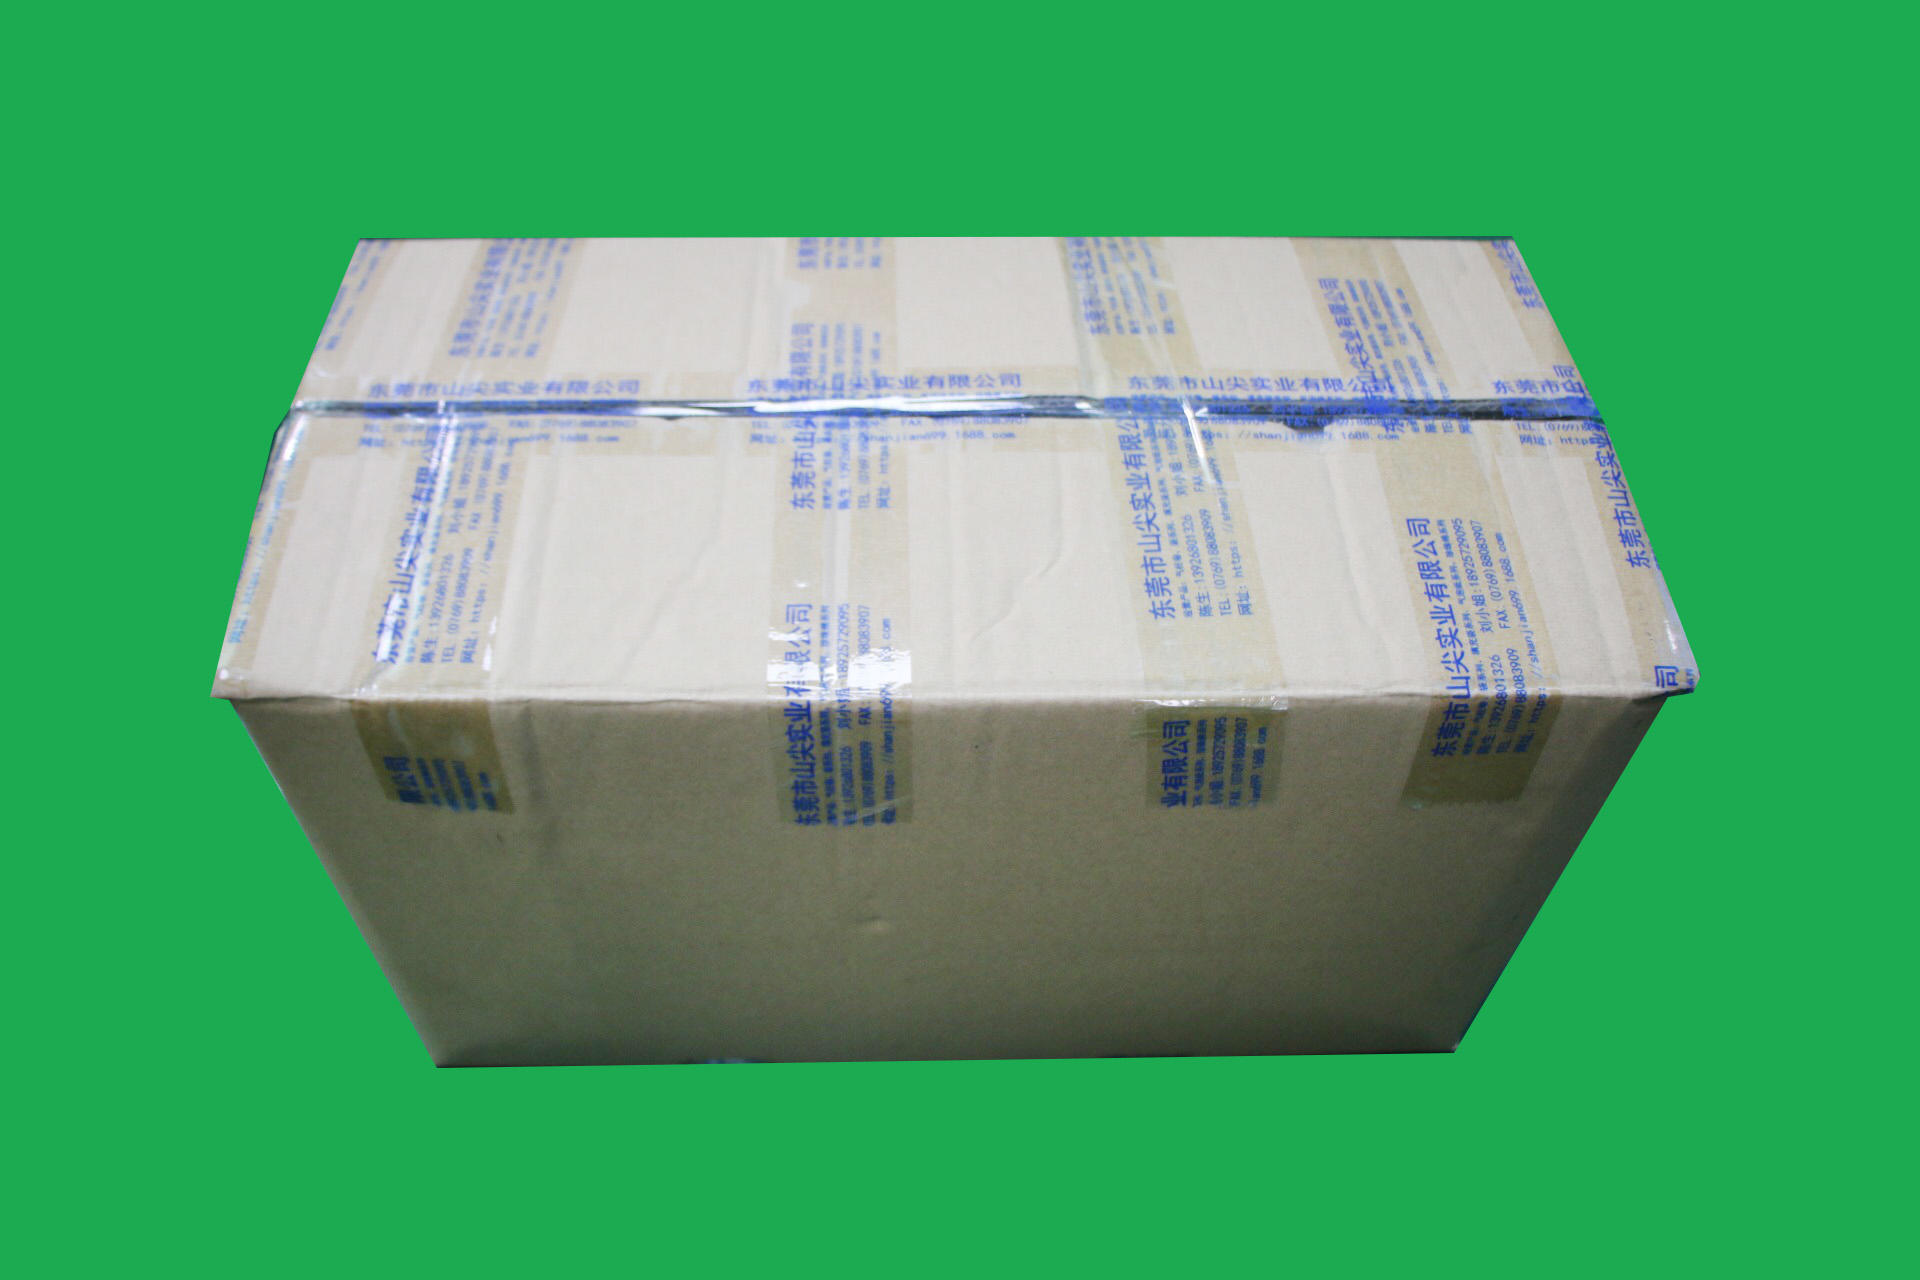 Sunshinepack OEM air filled plastic bags packaging Supply for delivery